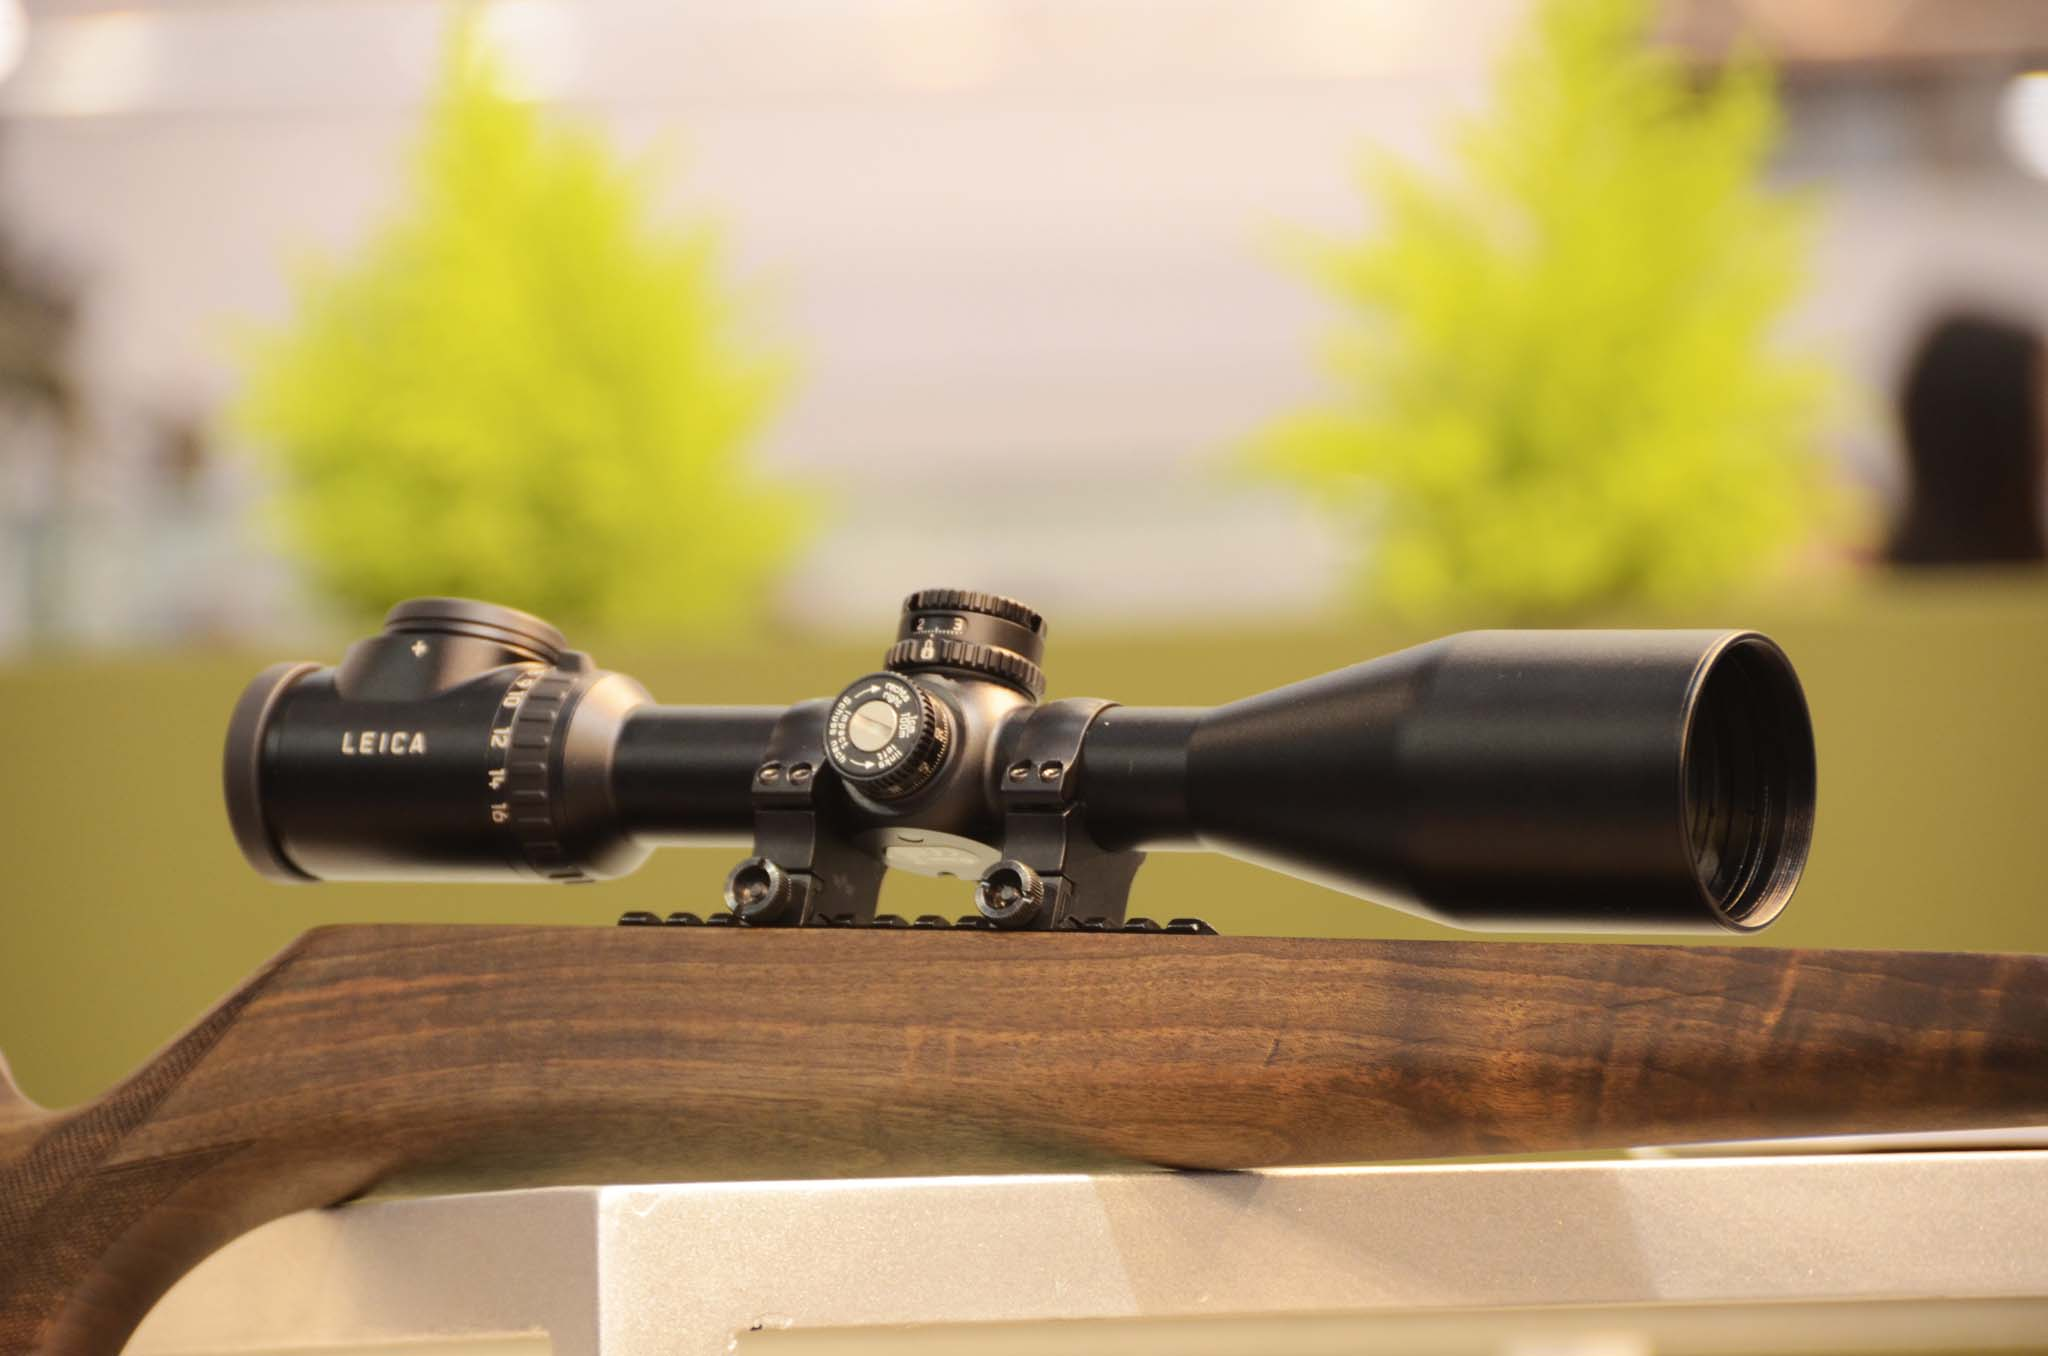 The new riflescope Leica Magnus 2.4 - 16x5: perfect mechanics and unparalleled performance